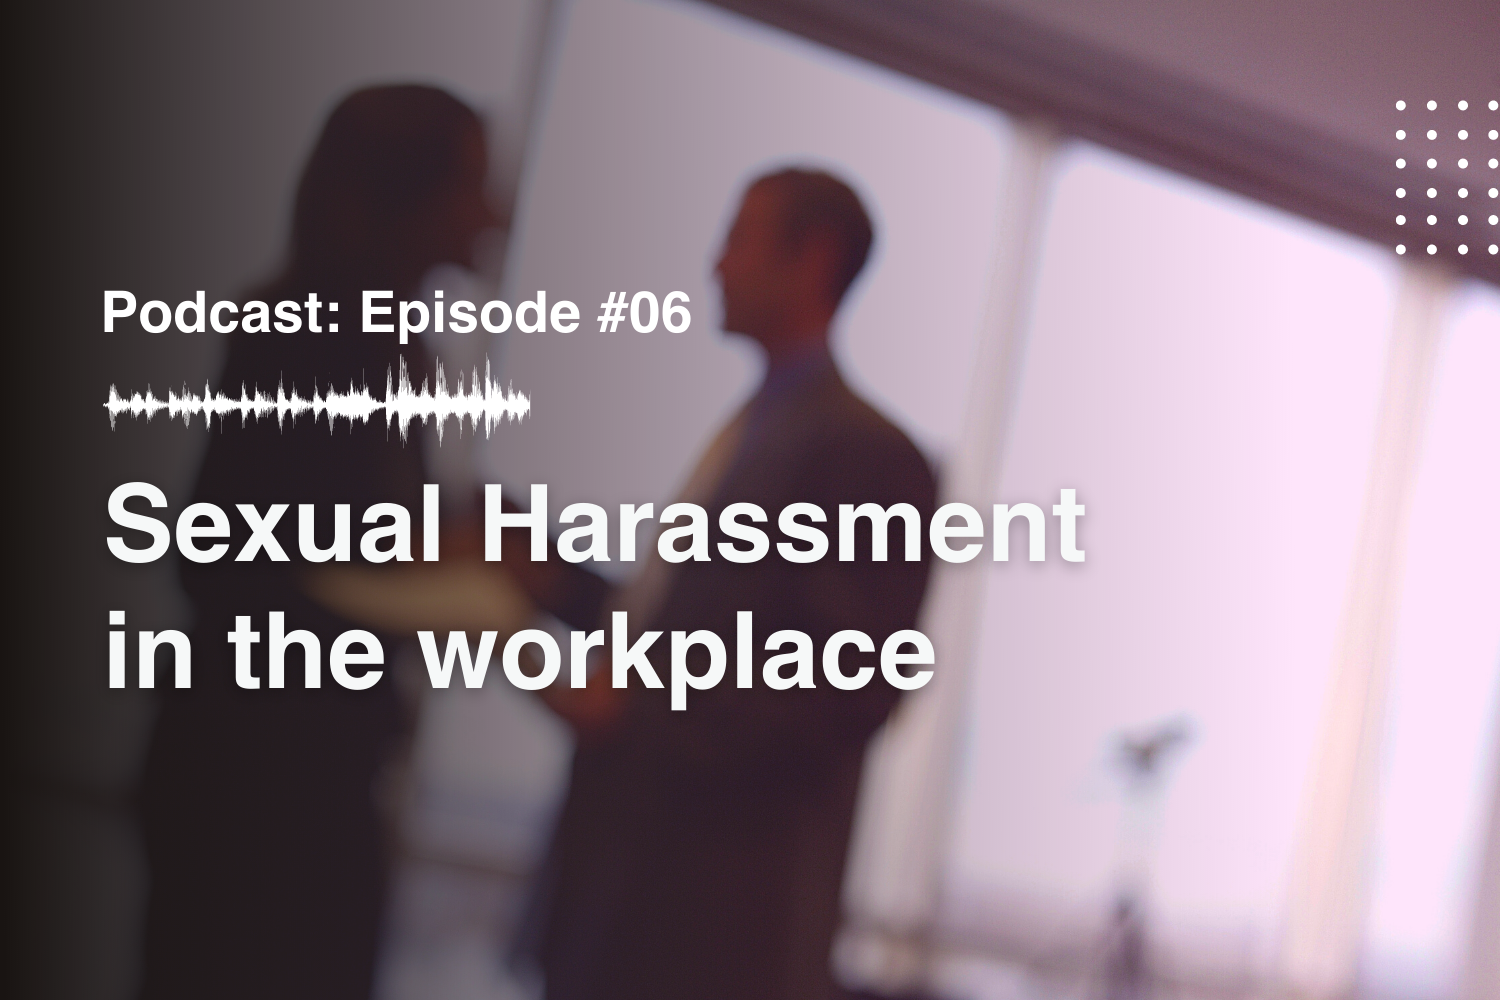 Episode #6 Sexual Harassment in the workplace